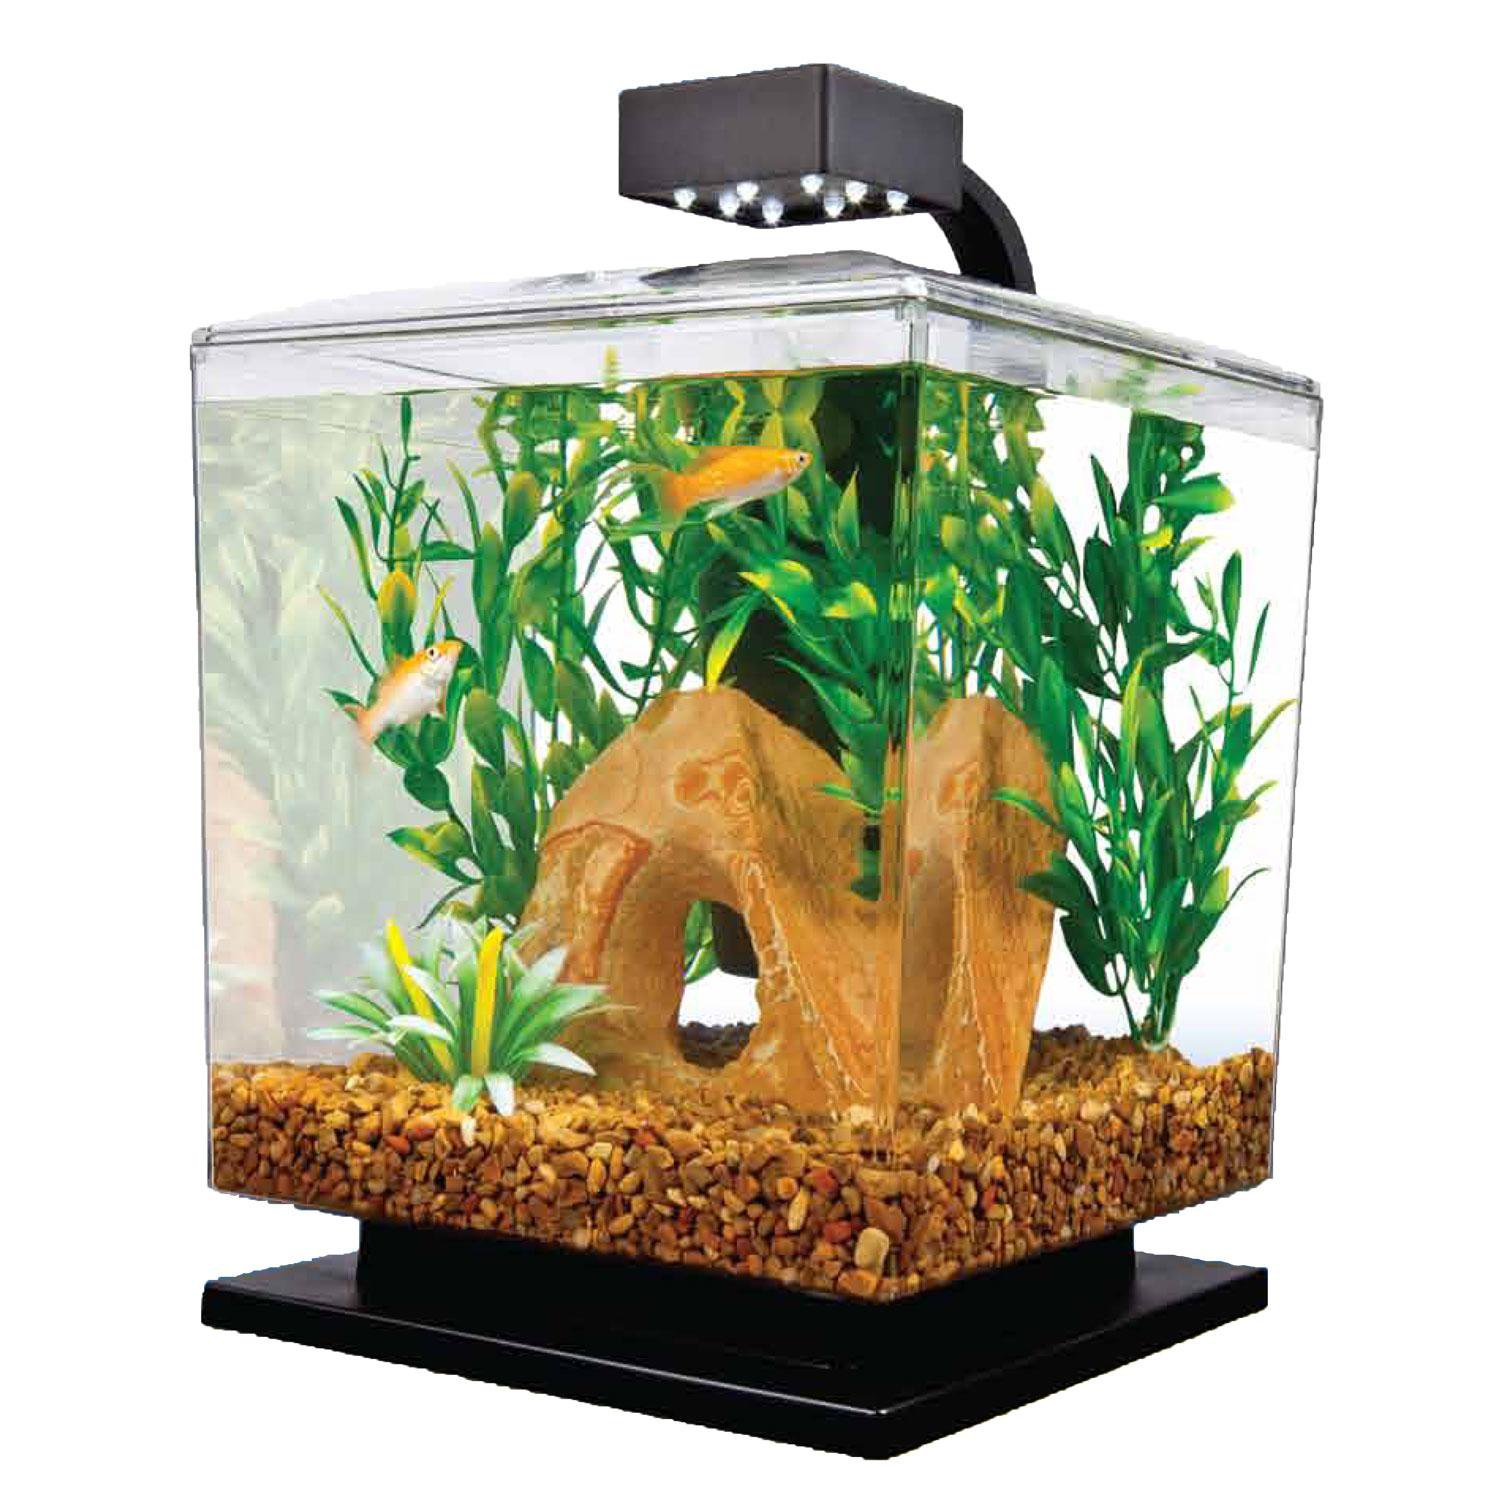 Aquarium fish 5 gallon tank - Tetra 1 5 Gallon Led Desktop Aquarium Kit